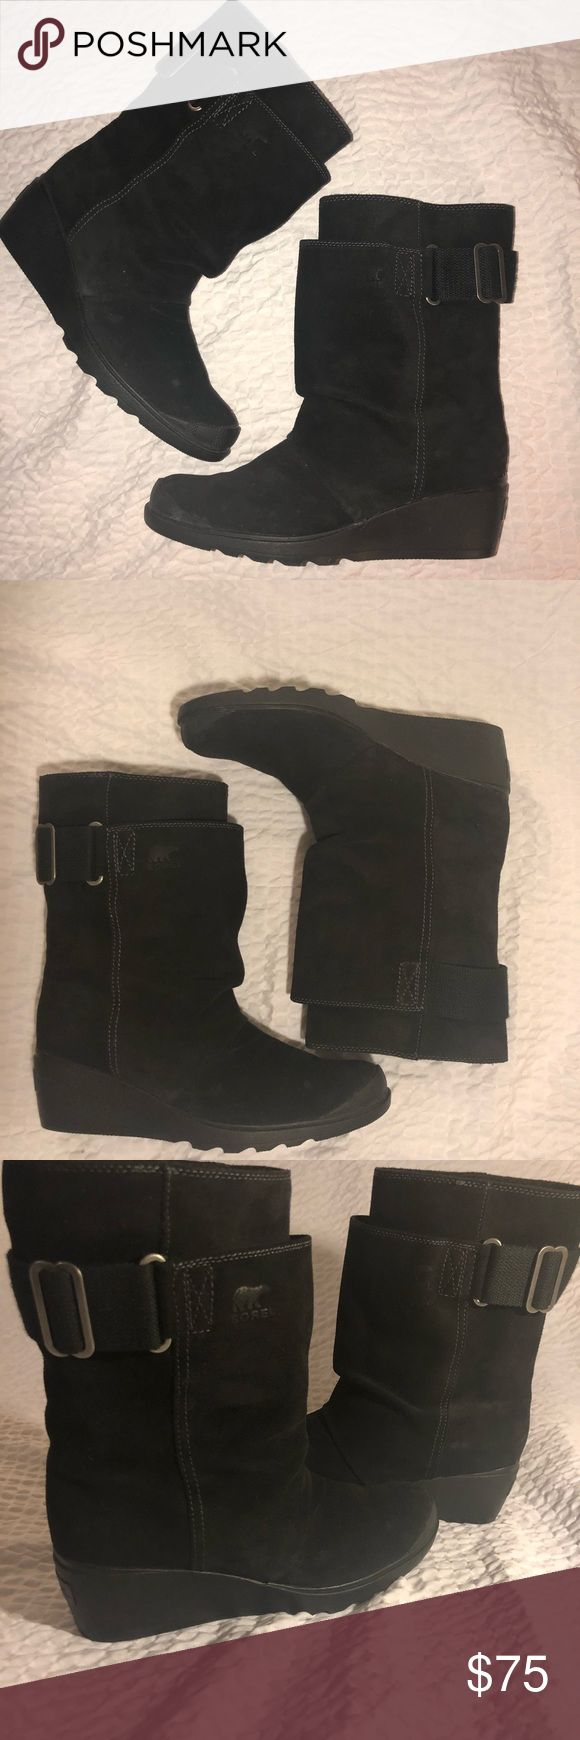 Sorel Leather Wedge Boots 100% leather Sorel boots. Waterproof oiled suede leather. Adjustable nylon web belt at shaft. These are meant for weather/ cold and hold up really well. Wore them twice. Like new and in wonderful condition.  Style: Women's Toronto Mid Boot  Size 9 2.5 inch wedge Sorel Shoes Wedges